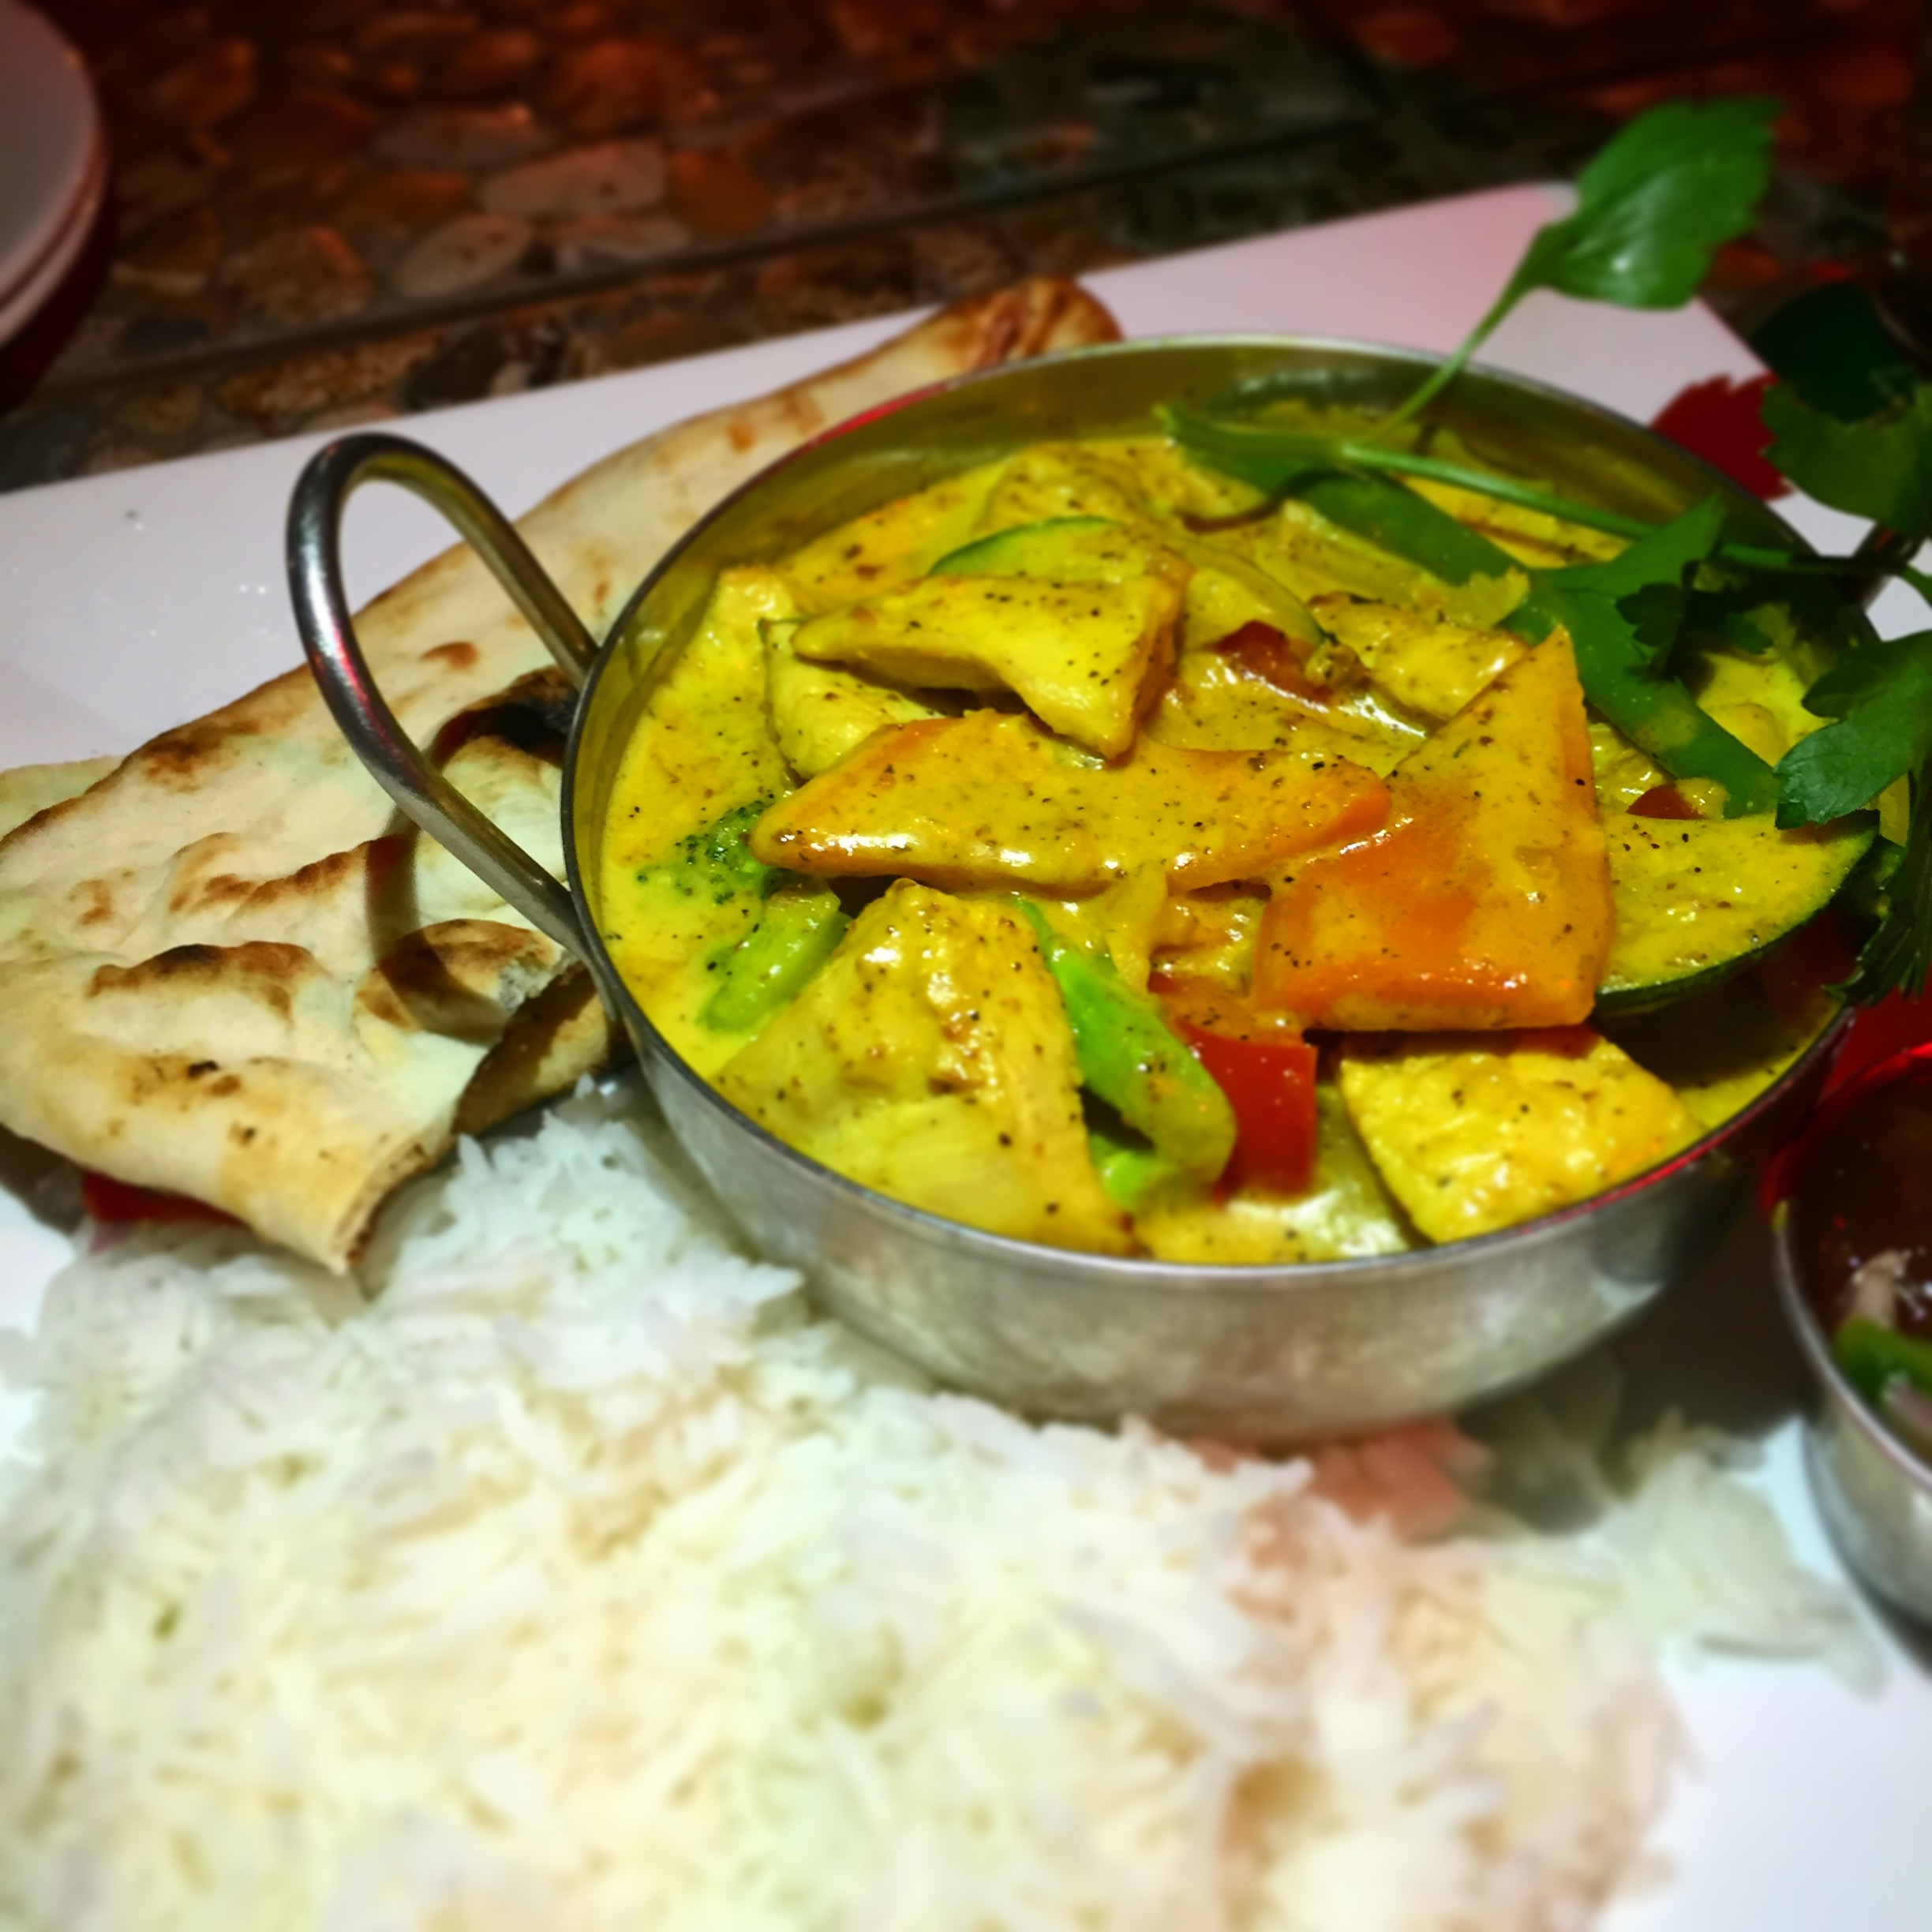 West Indian Chicken Curry served with white rice, naan bread and mango chutney